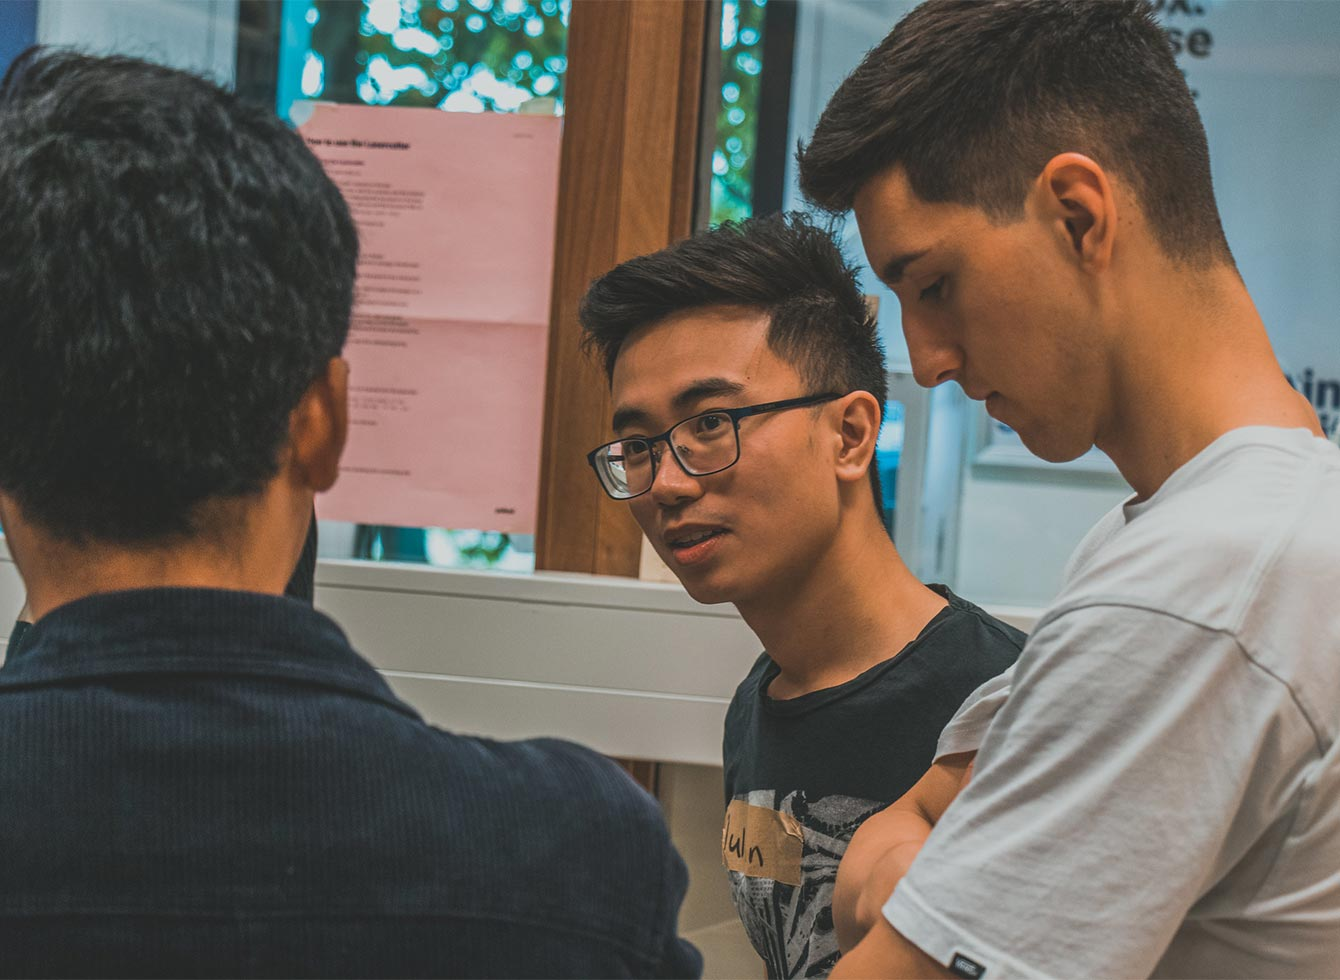 Three young men discussing how to work on their prototype in the Master Program Digital Technology Engineering